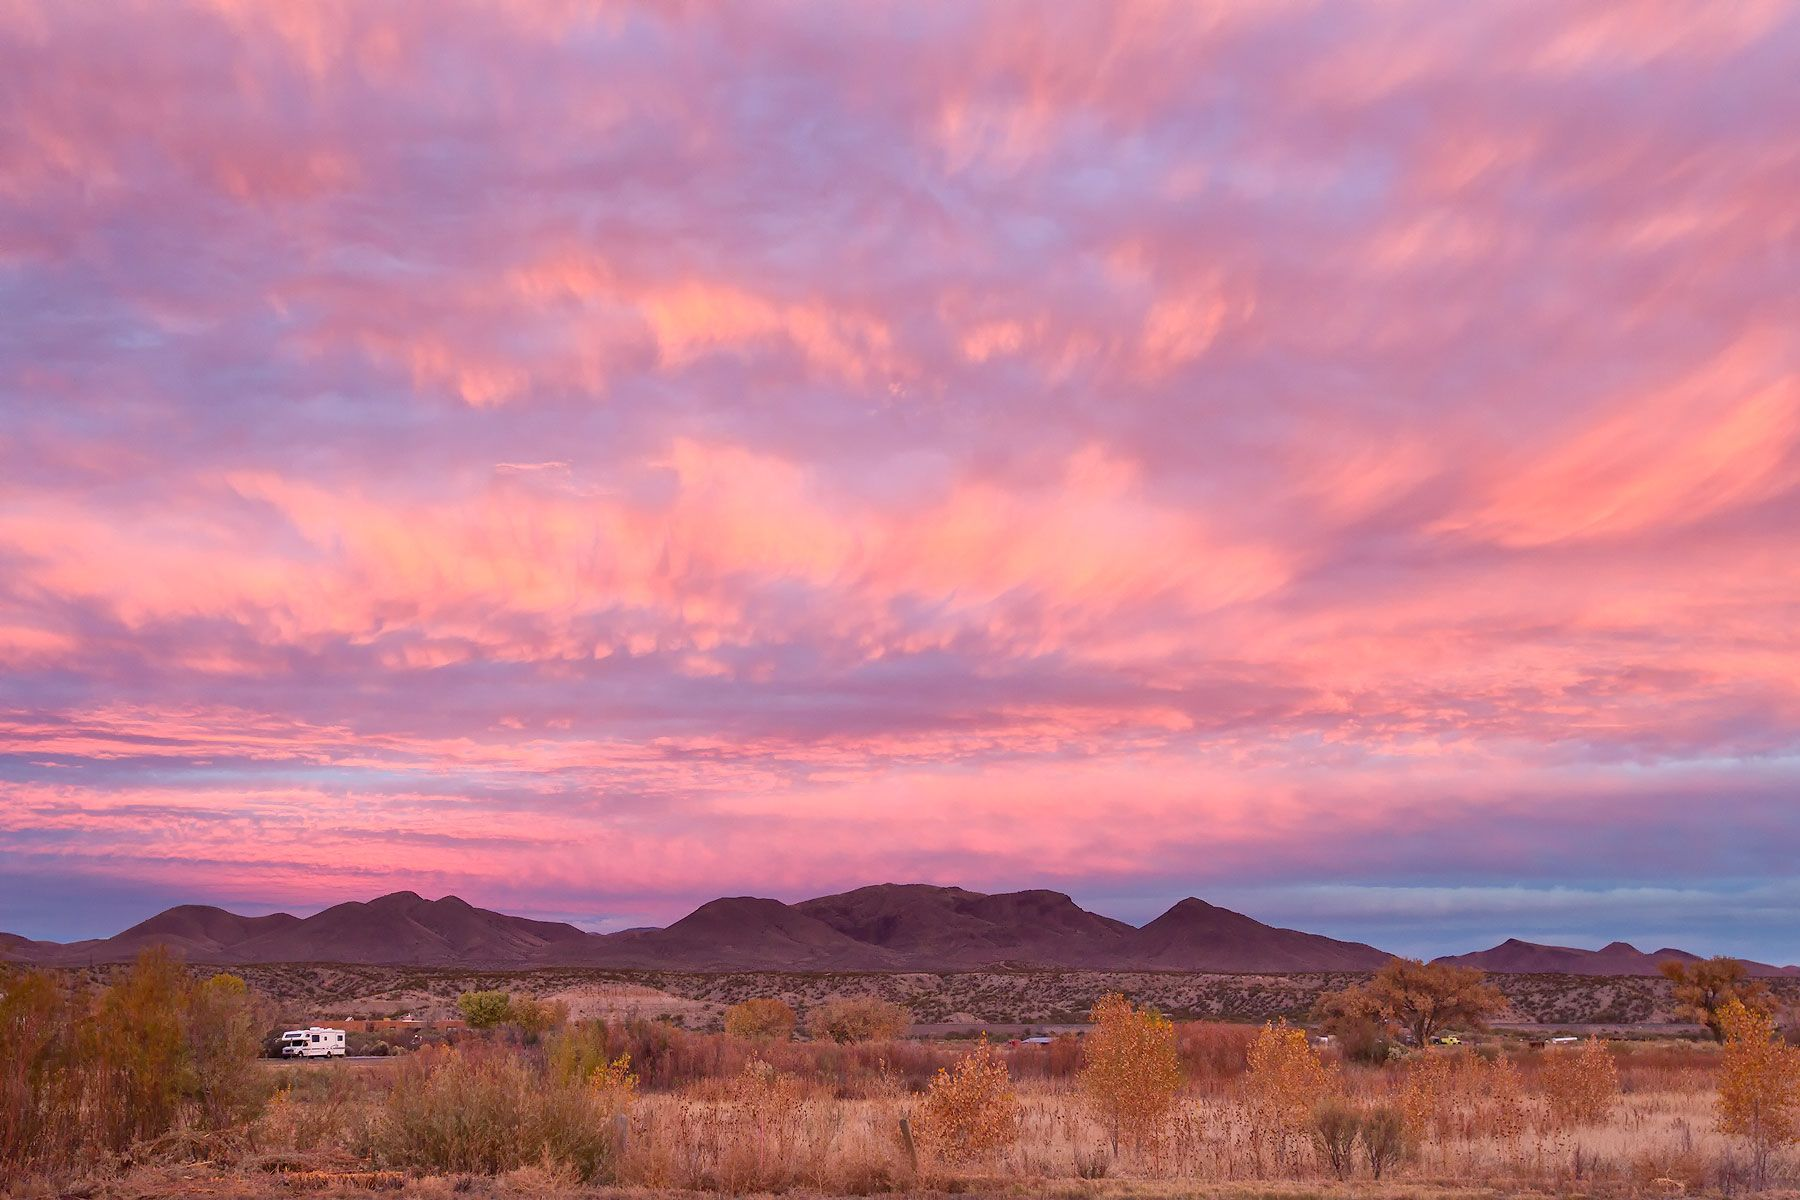 Pink-morning-sky-above-the-mountains-23100041-Bosque-del-Apache-NWR,-San-Antonio,-NM.jpg